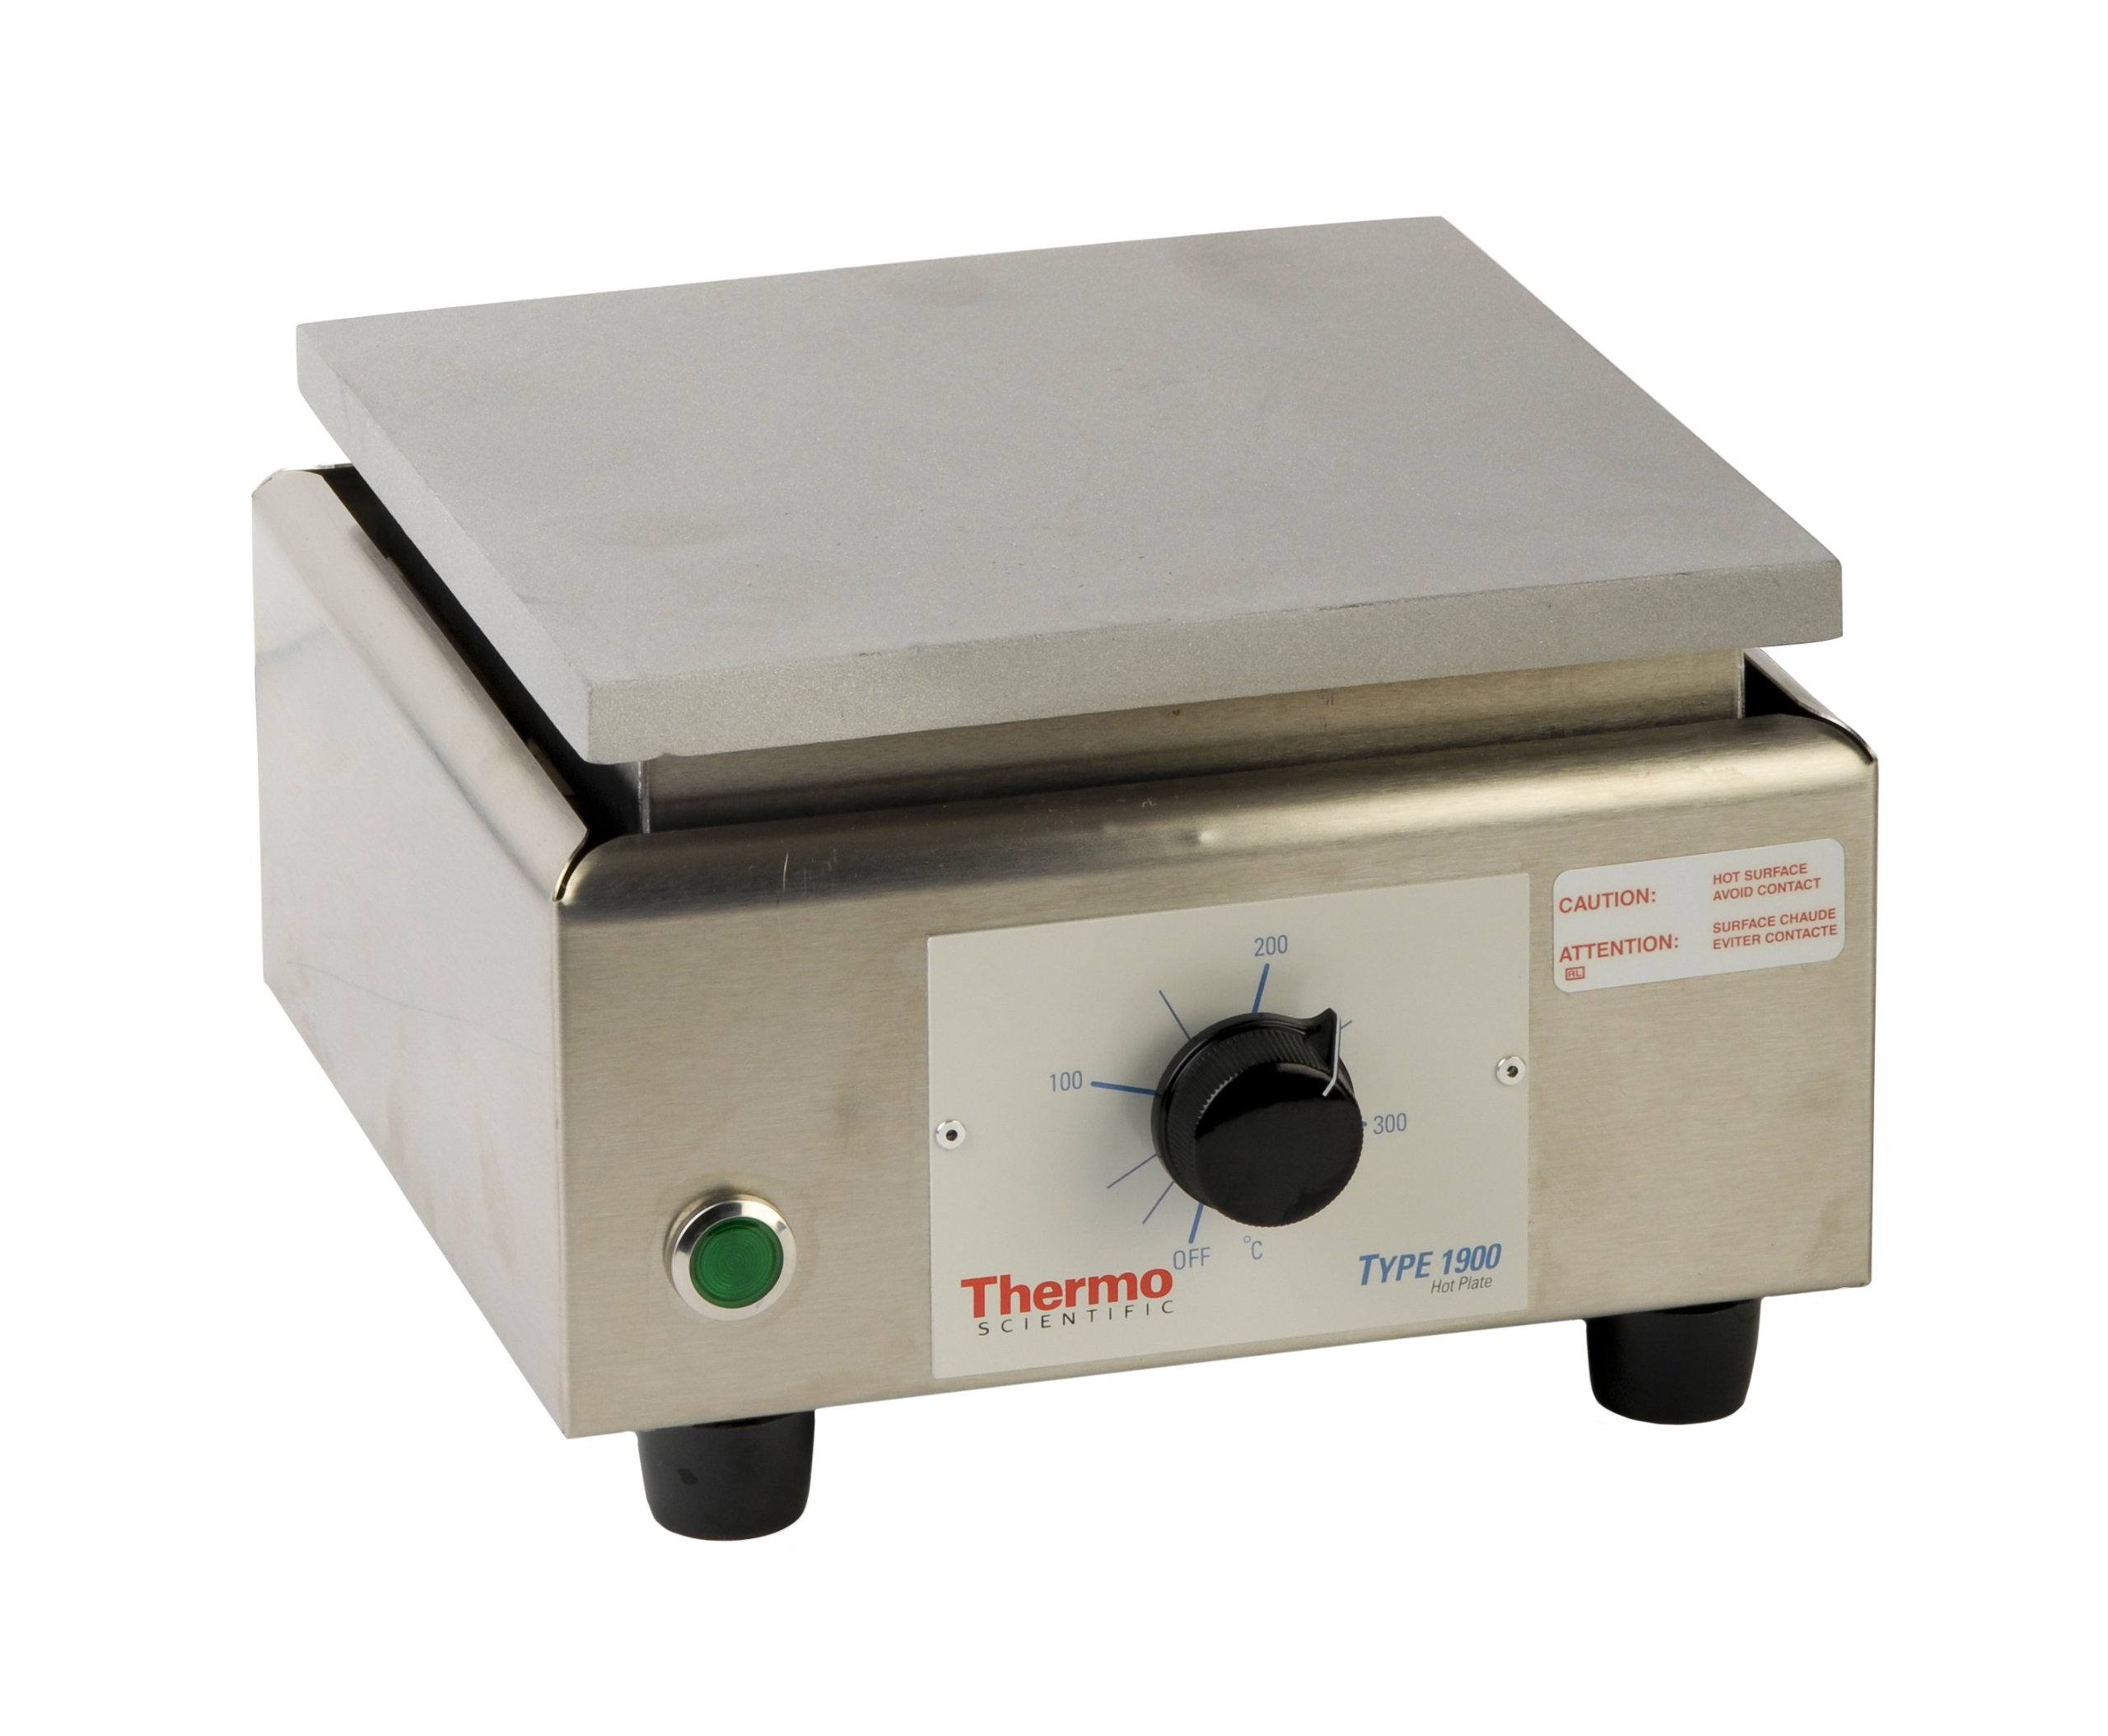 Thermo Scientific HPA1915BQ Analog Aluminum-Top Hot Plate with 6.25'' x 6.25'' Aluminum Heating Plate, 7.63'' Length x 6.63'' Width x 4.38'' Height, 38 to 371 Degree C, 120V/60Hz